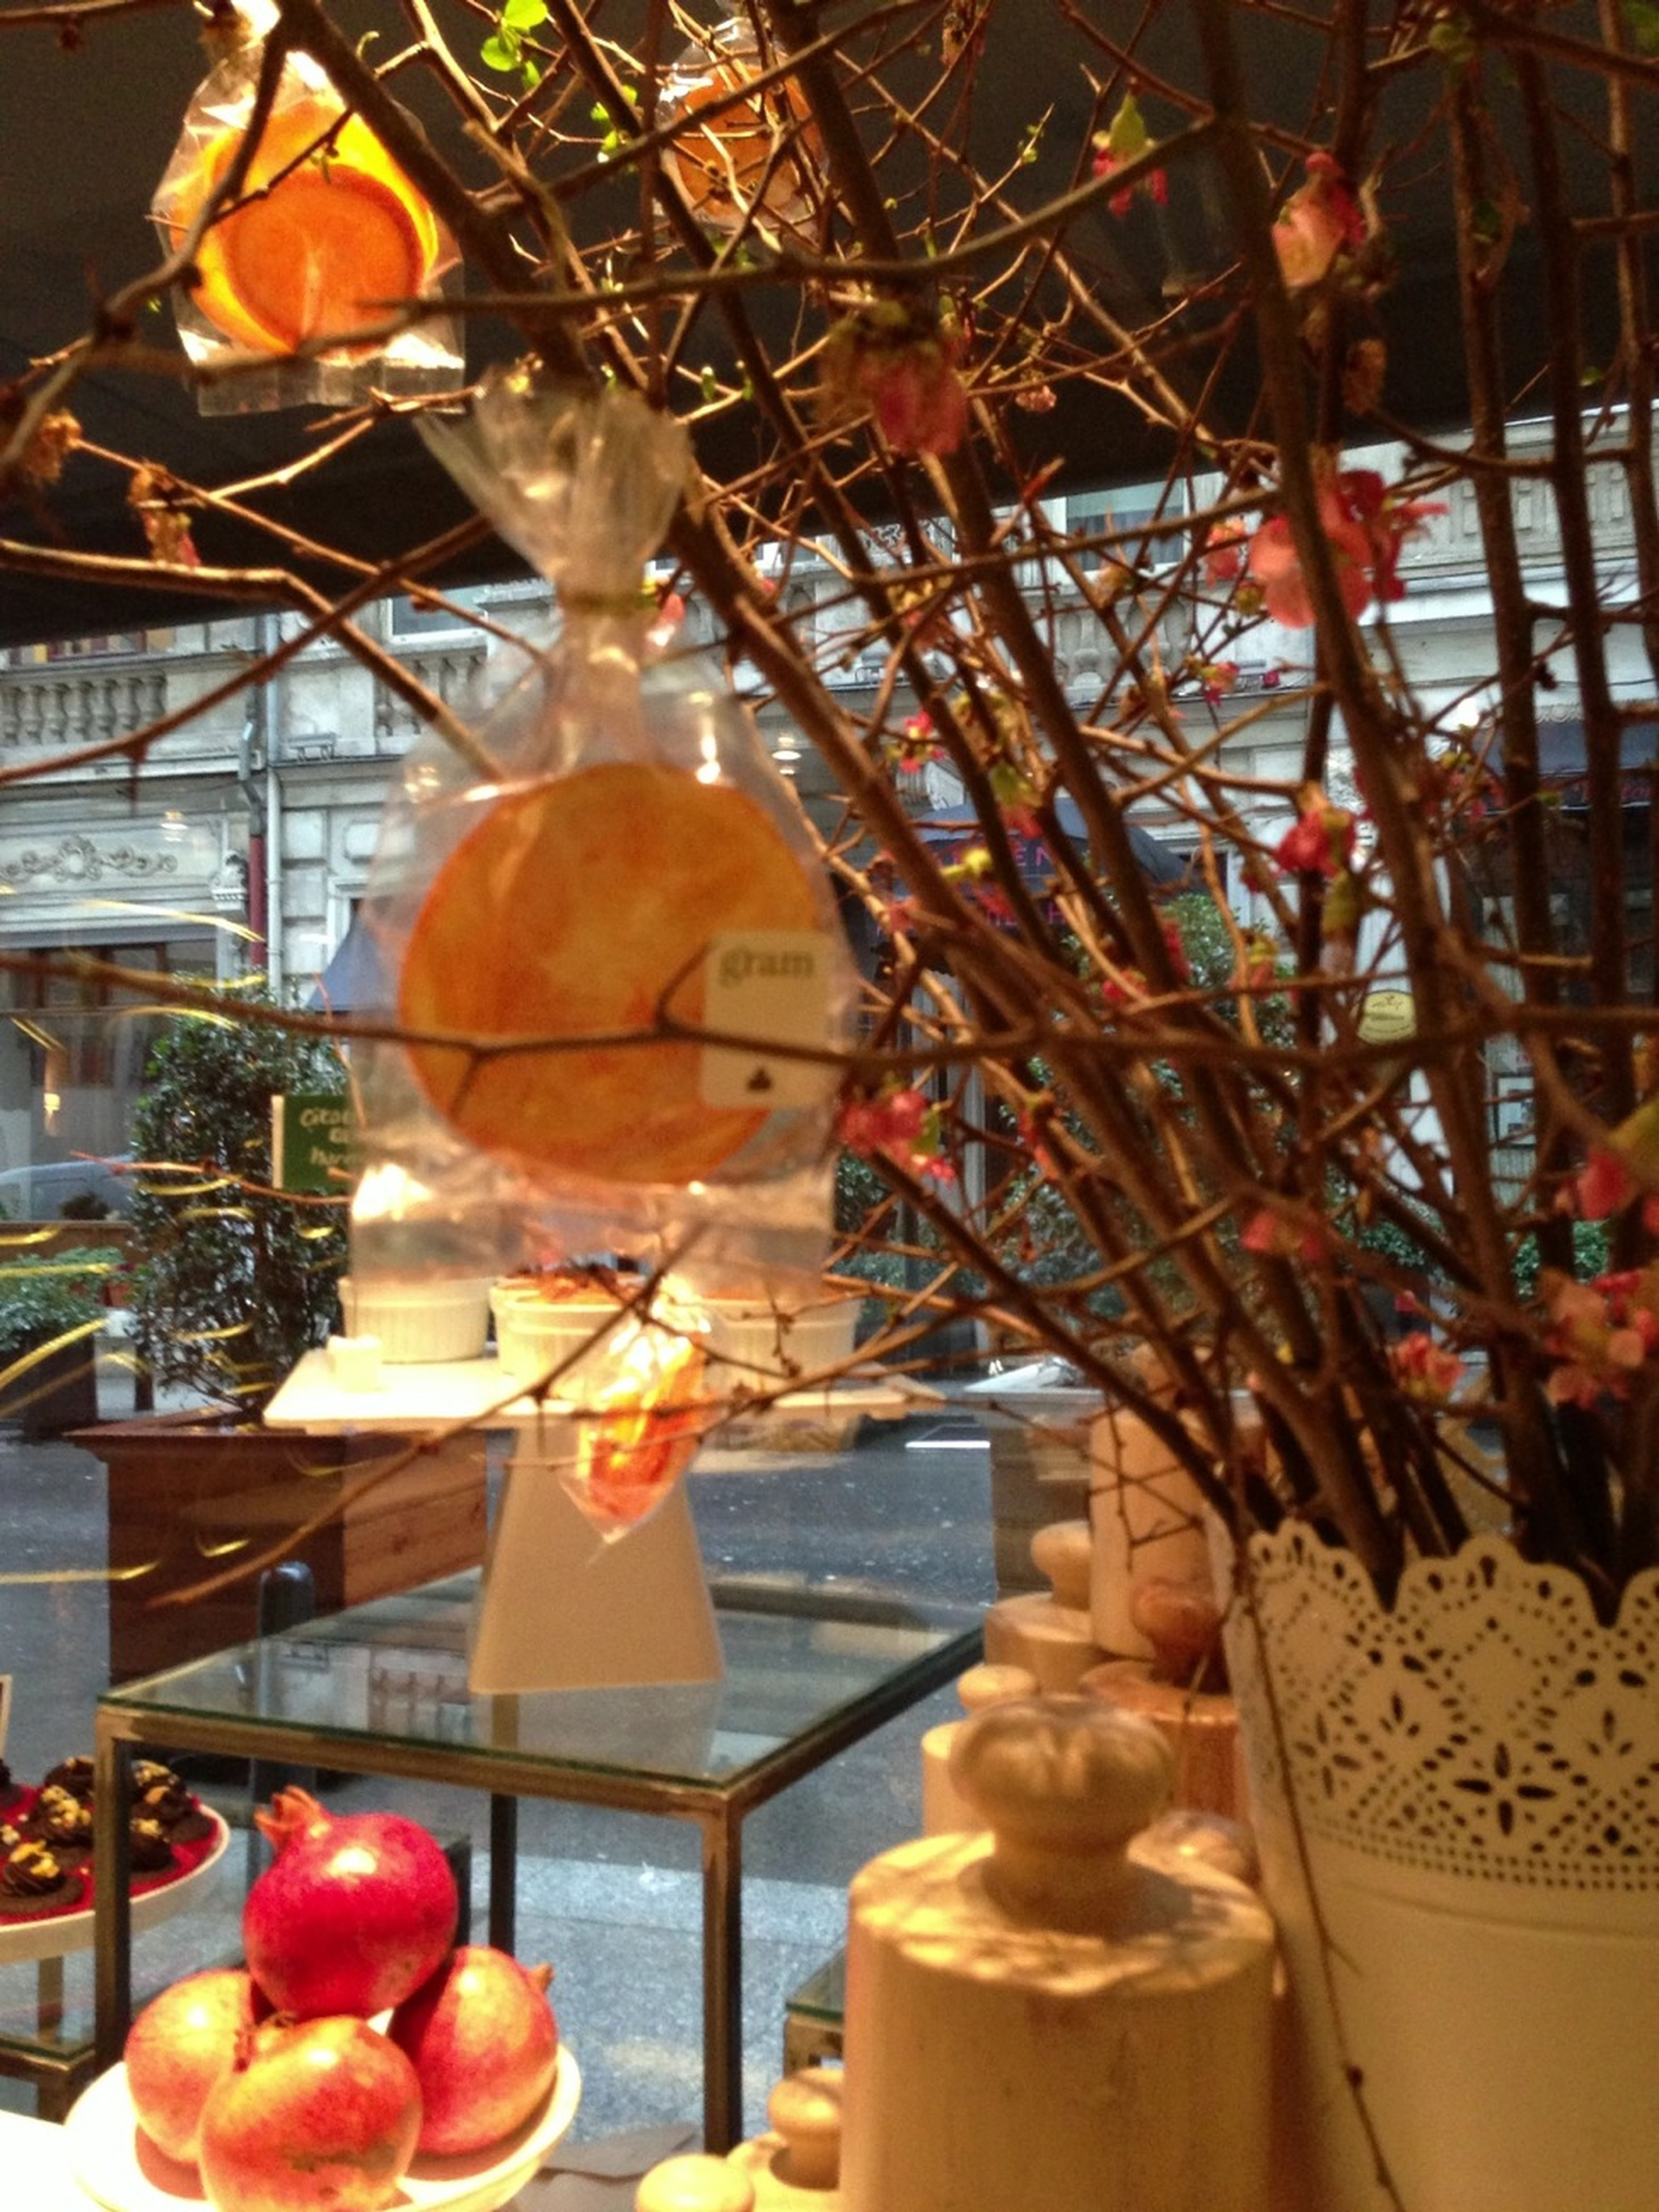 indoors, food and drink, hanging, food, decoration, still life, celebration, illuminated, freshness, retail, close-up, glass - material, low angle view, for sale, tradition, healthy eating, cultures, focus on foreground, lantern, restaurant